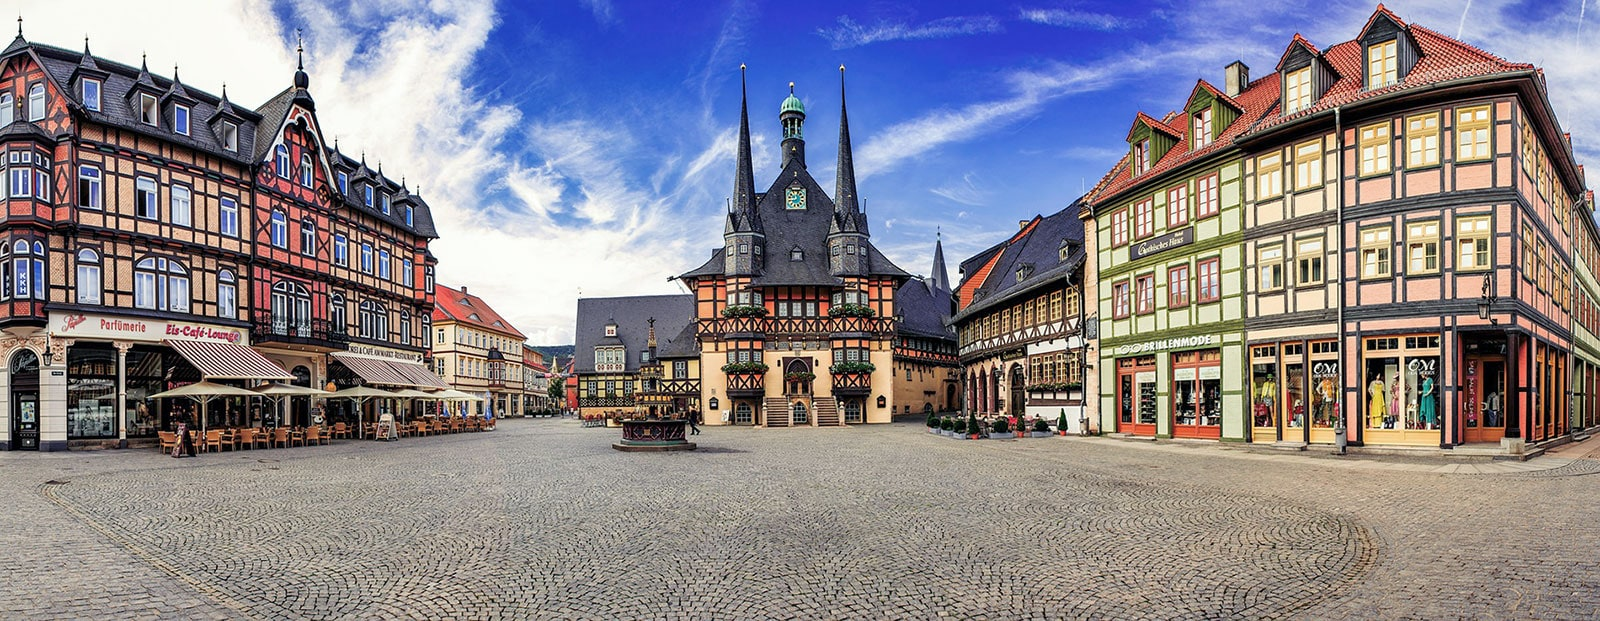 Wernigerode, Market Square, Town Hall, Fountain, Gothic House, Sights, Photo spot, Travelreport